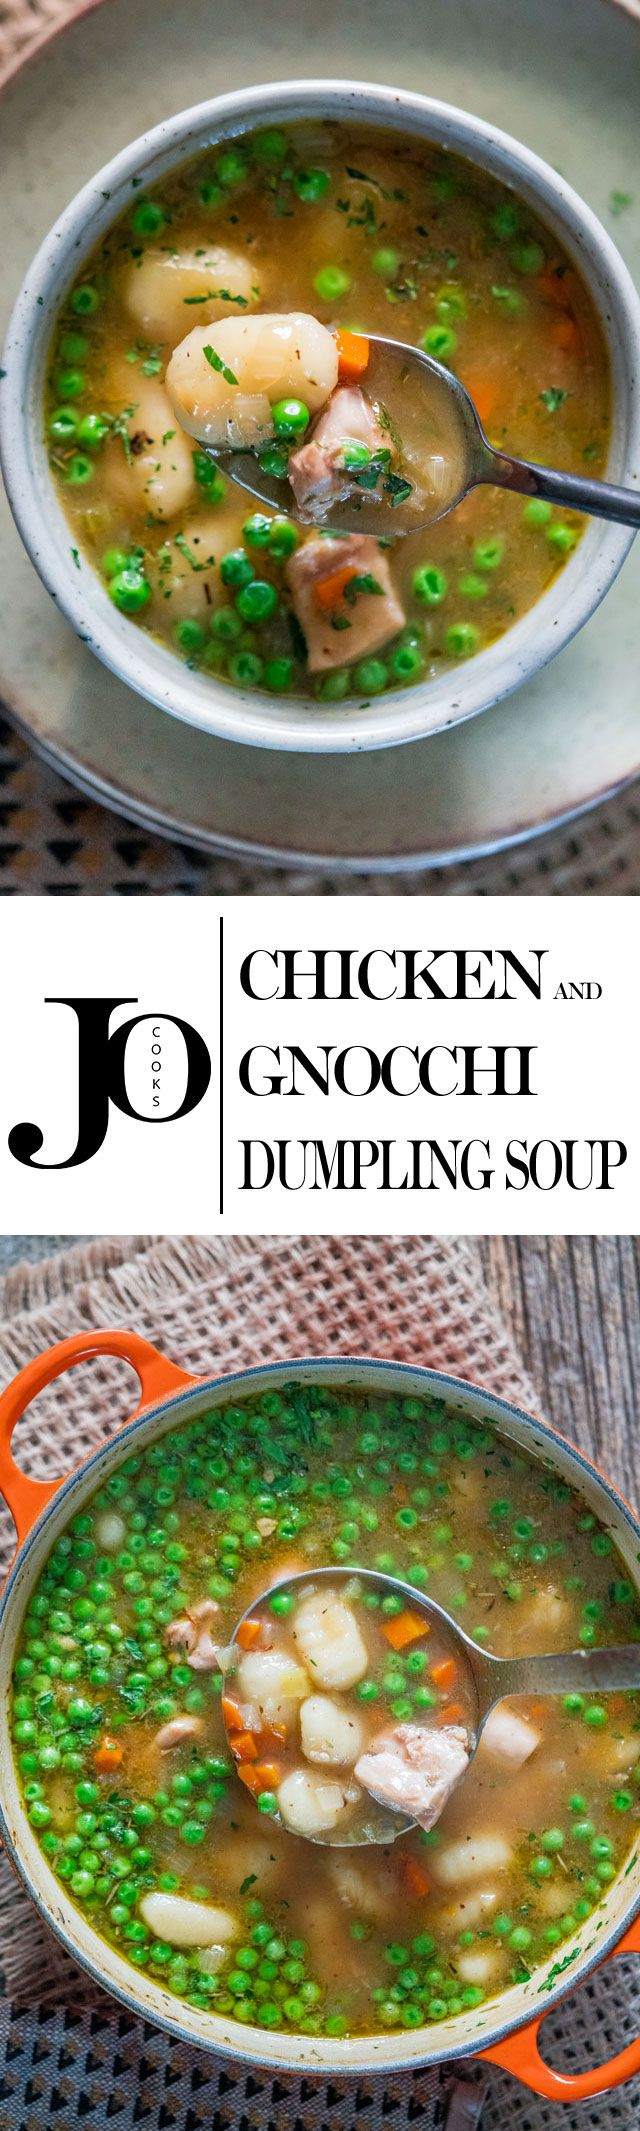 This Chicken and Gnocchi Dumpling Soup is perfect for this time of year, it's comforting, delicious and made with gnocchi. Super easy to make!